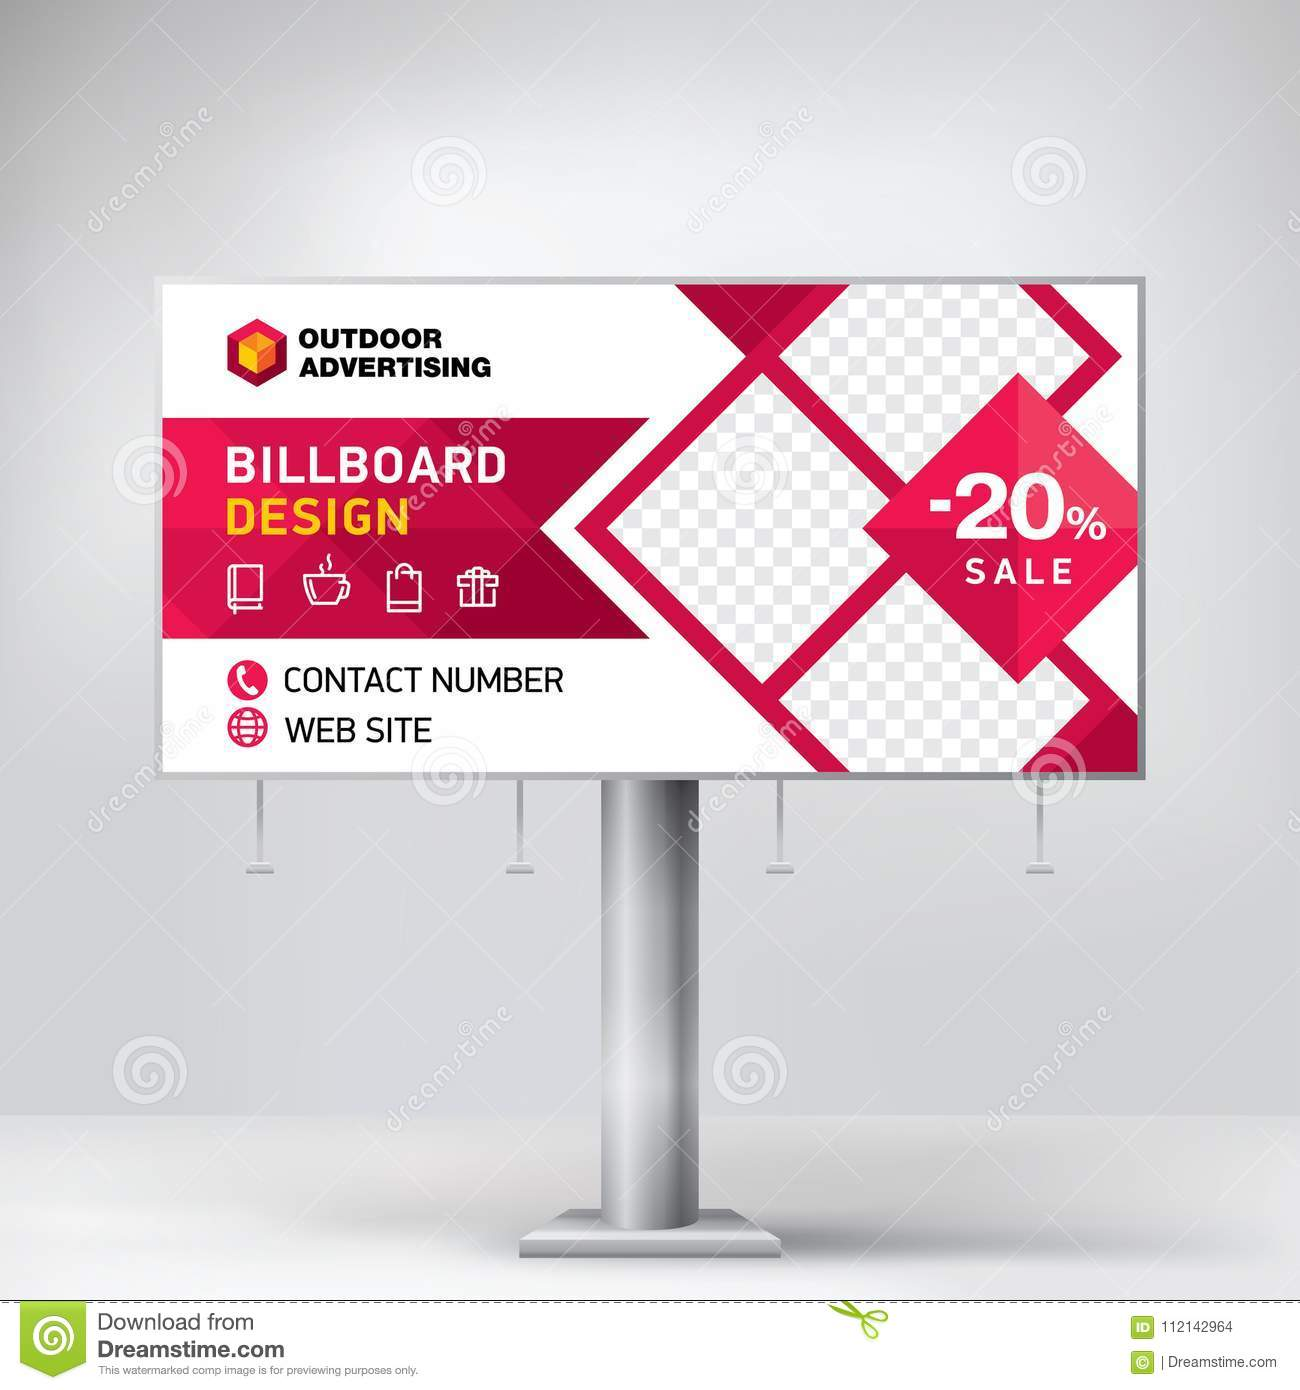 billboard design template for outdoor advertising posting photos